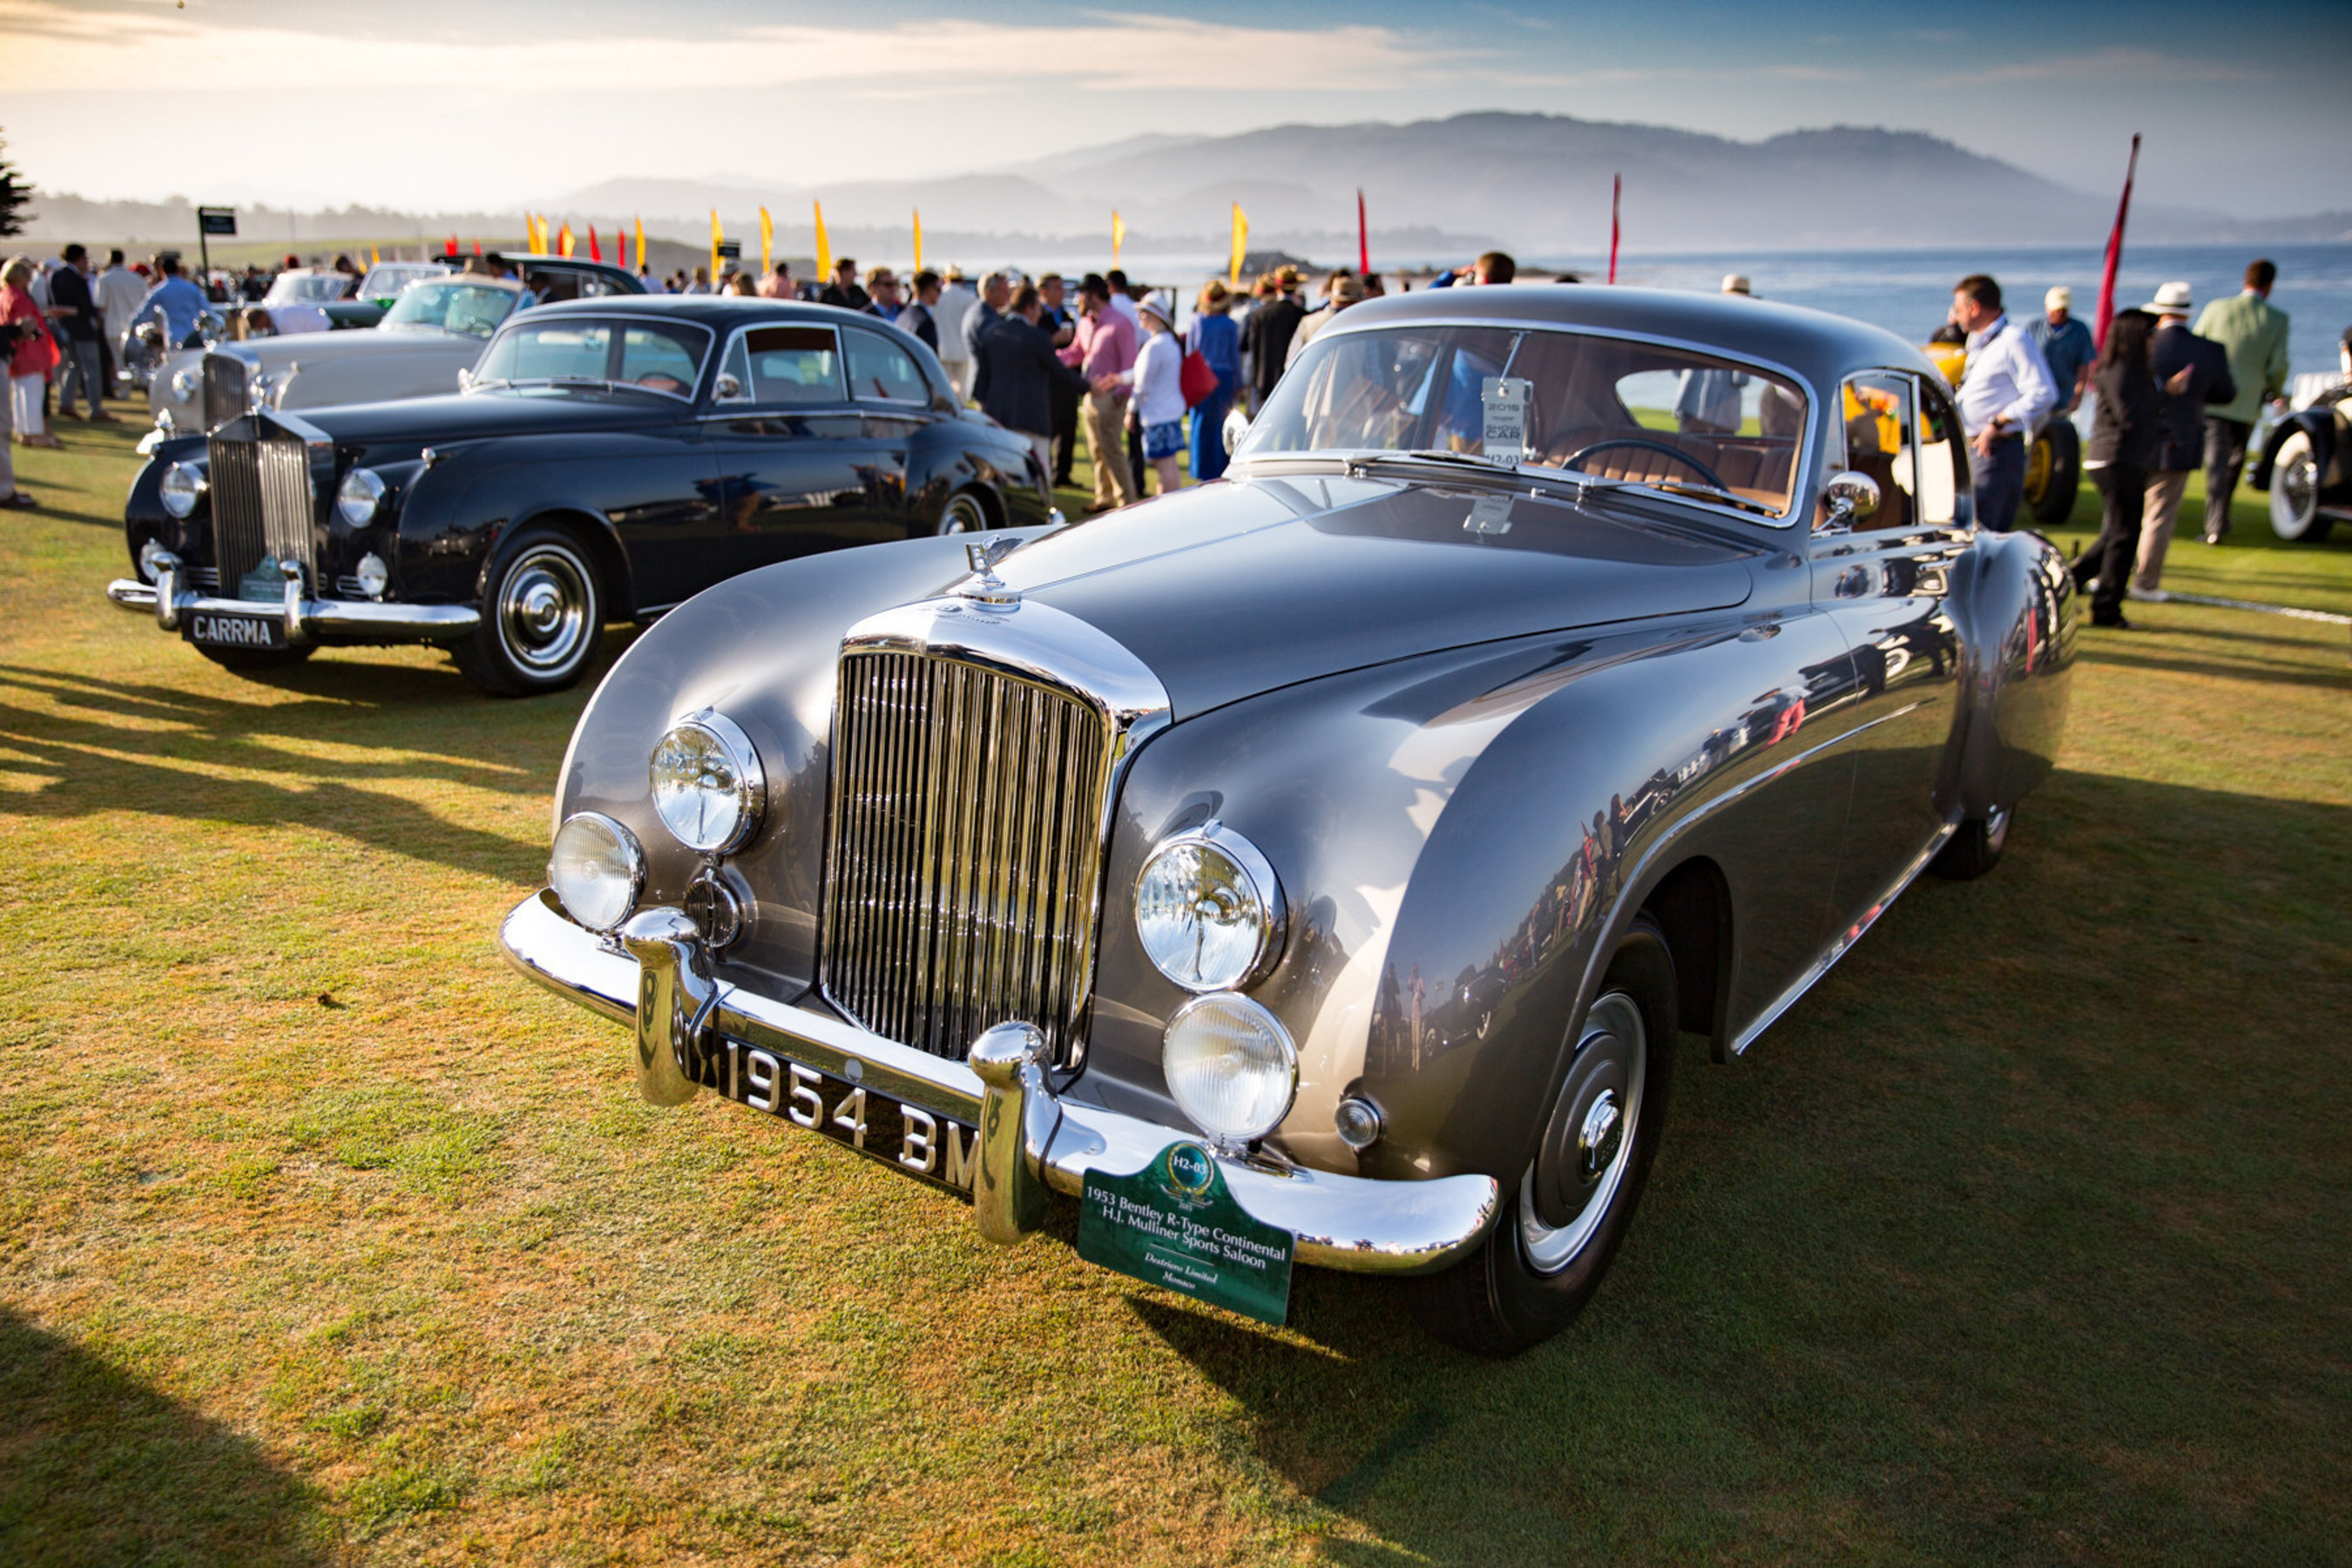 Speed Digital to Bring Cloud Technology to 2017 Pebble Beach Concours d'Elegance